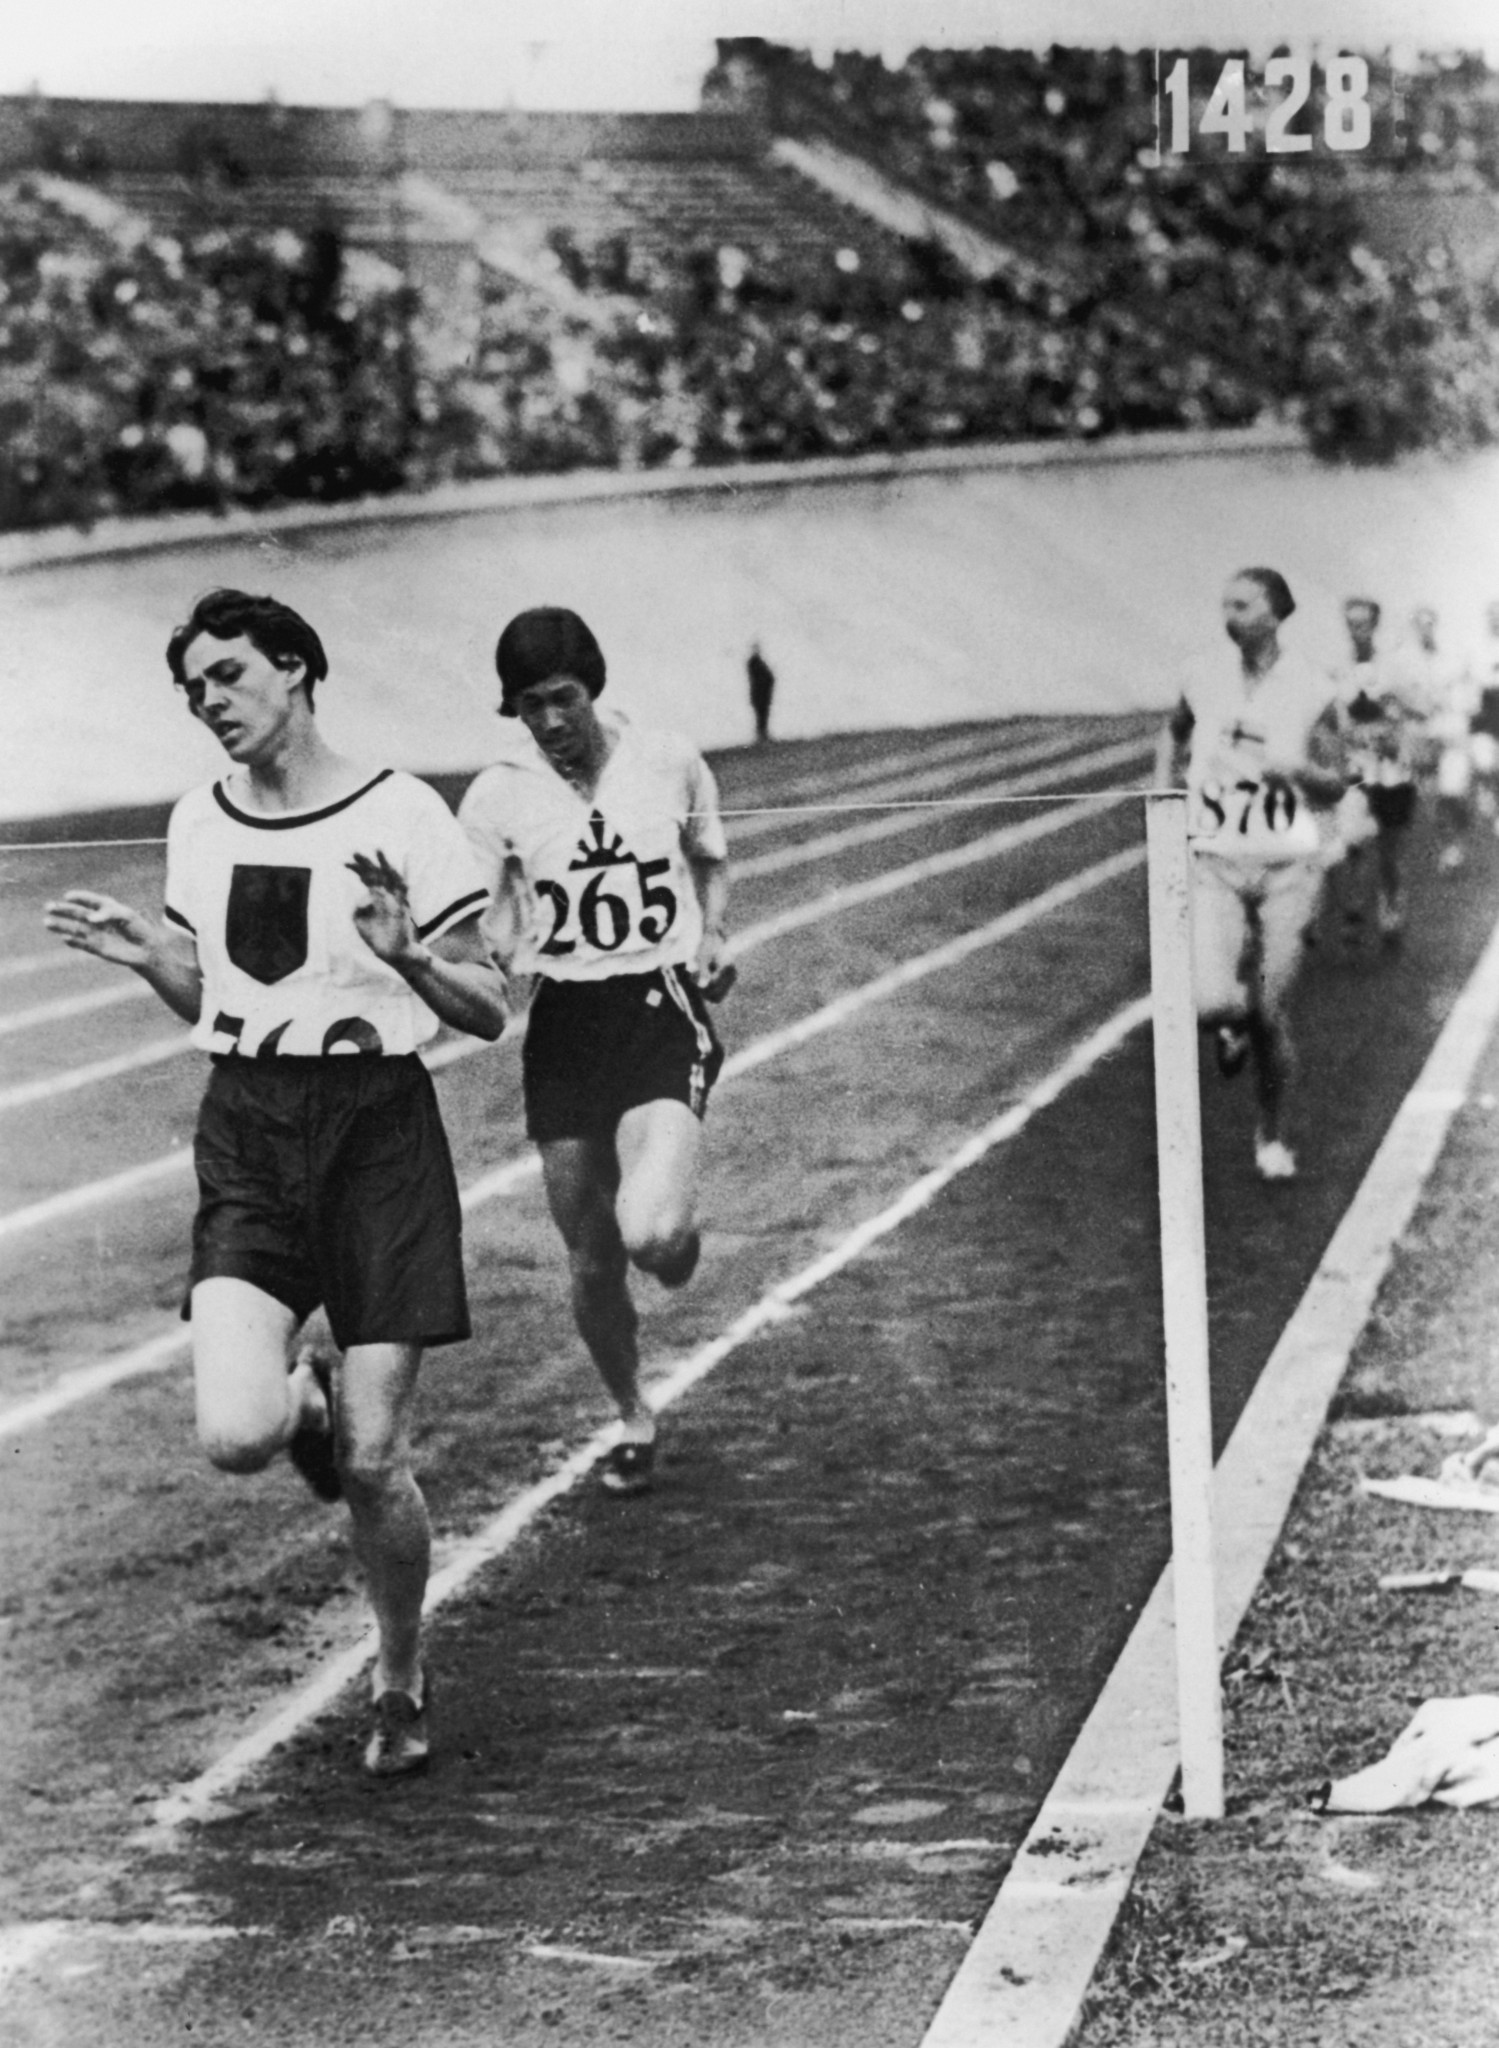 Lina Radke was the first women's 800m Olympic champion, and set a world record in the process ©Getty Images